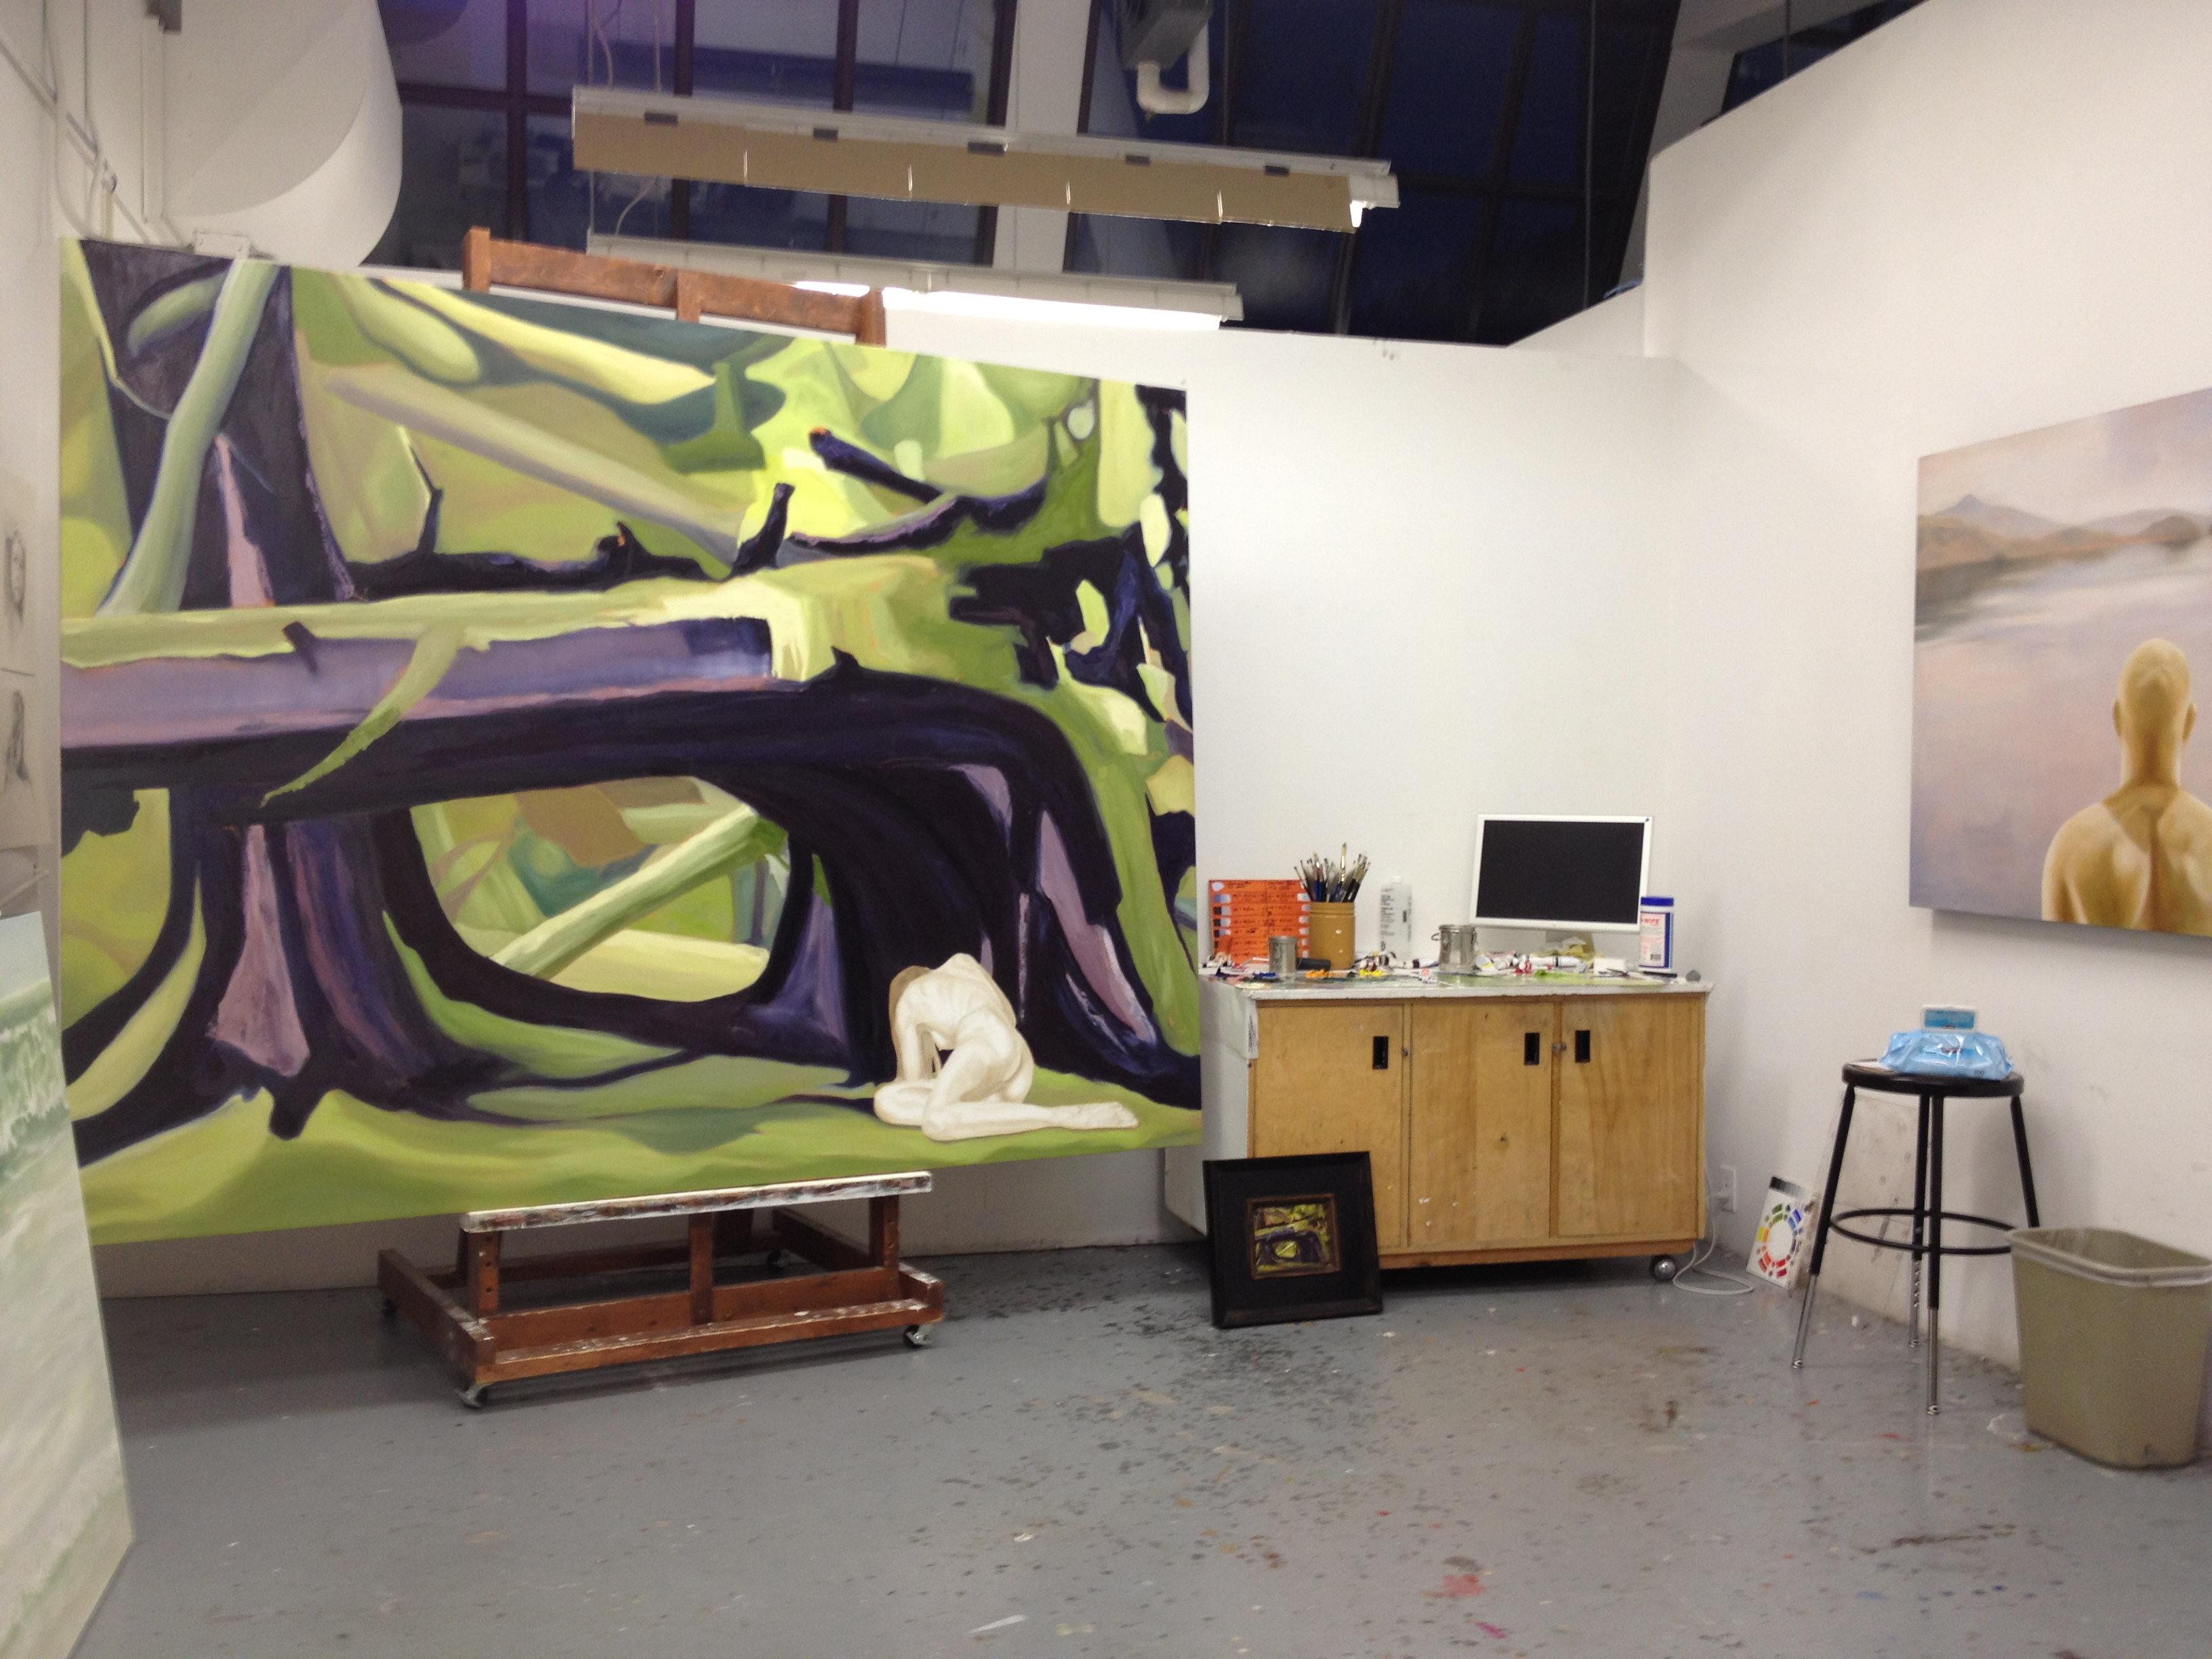 Janice Tanton's studio with works in progress at The Banff Centre.